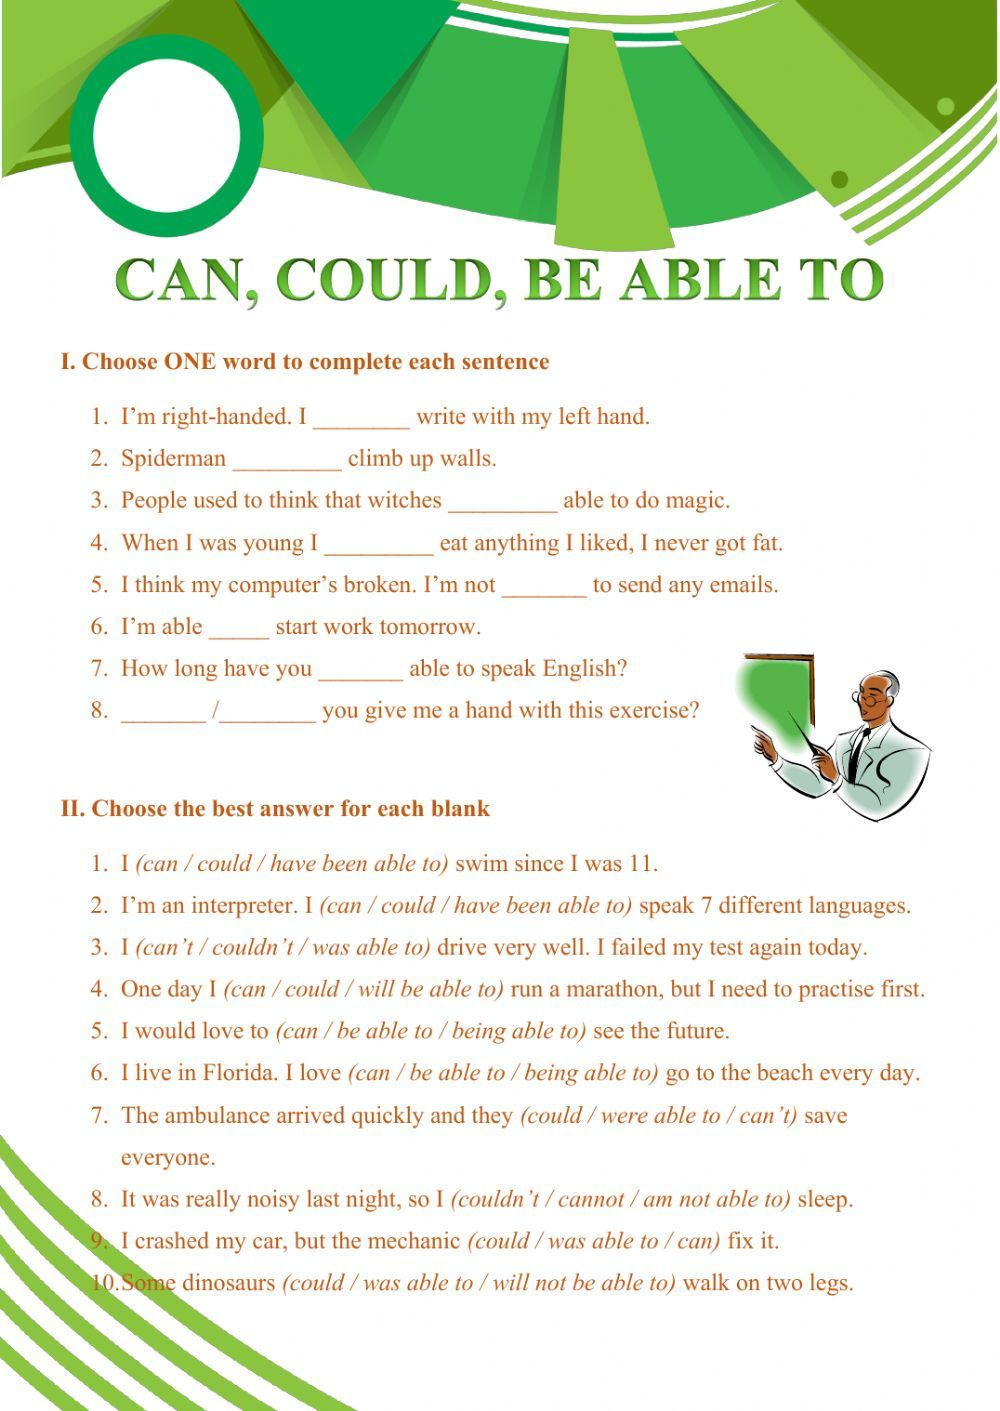 Modal Verbs Interactive And Downloadable Worksheet You Can Do The Exercises Online Or Down Preposition Worksheets Complex Sentences Worksheets School Subjects [ 1411 x 1000 Pixel ]